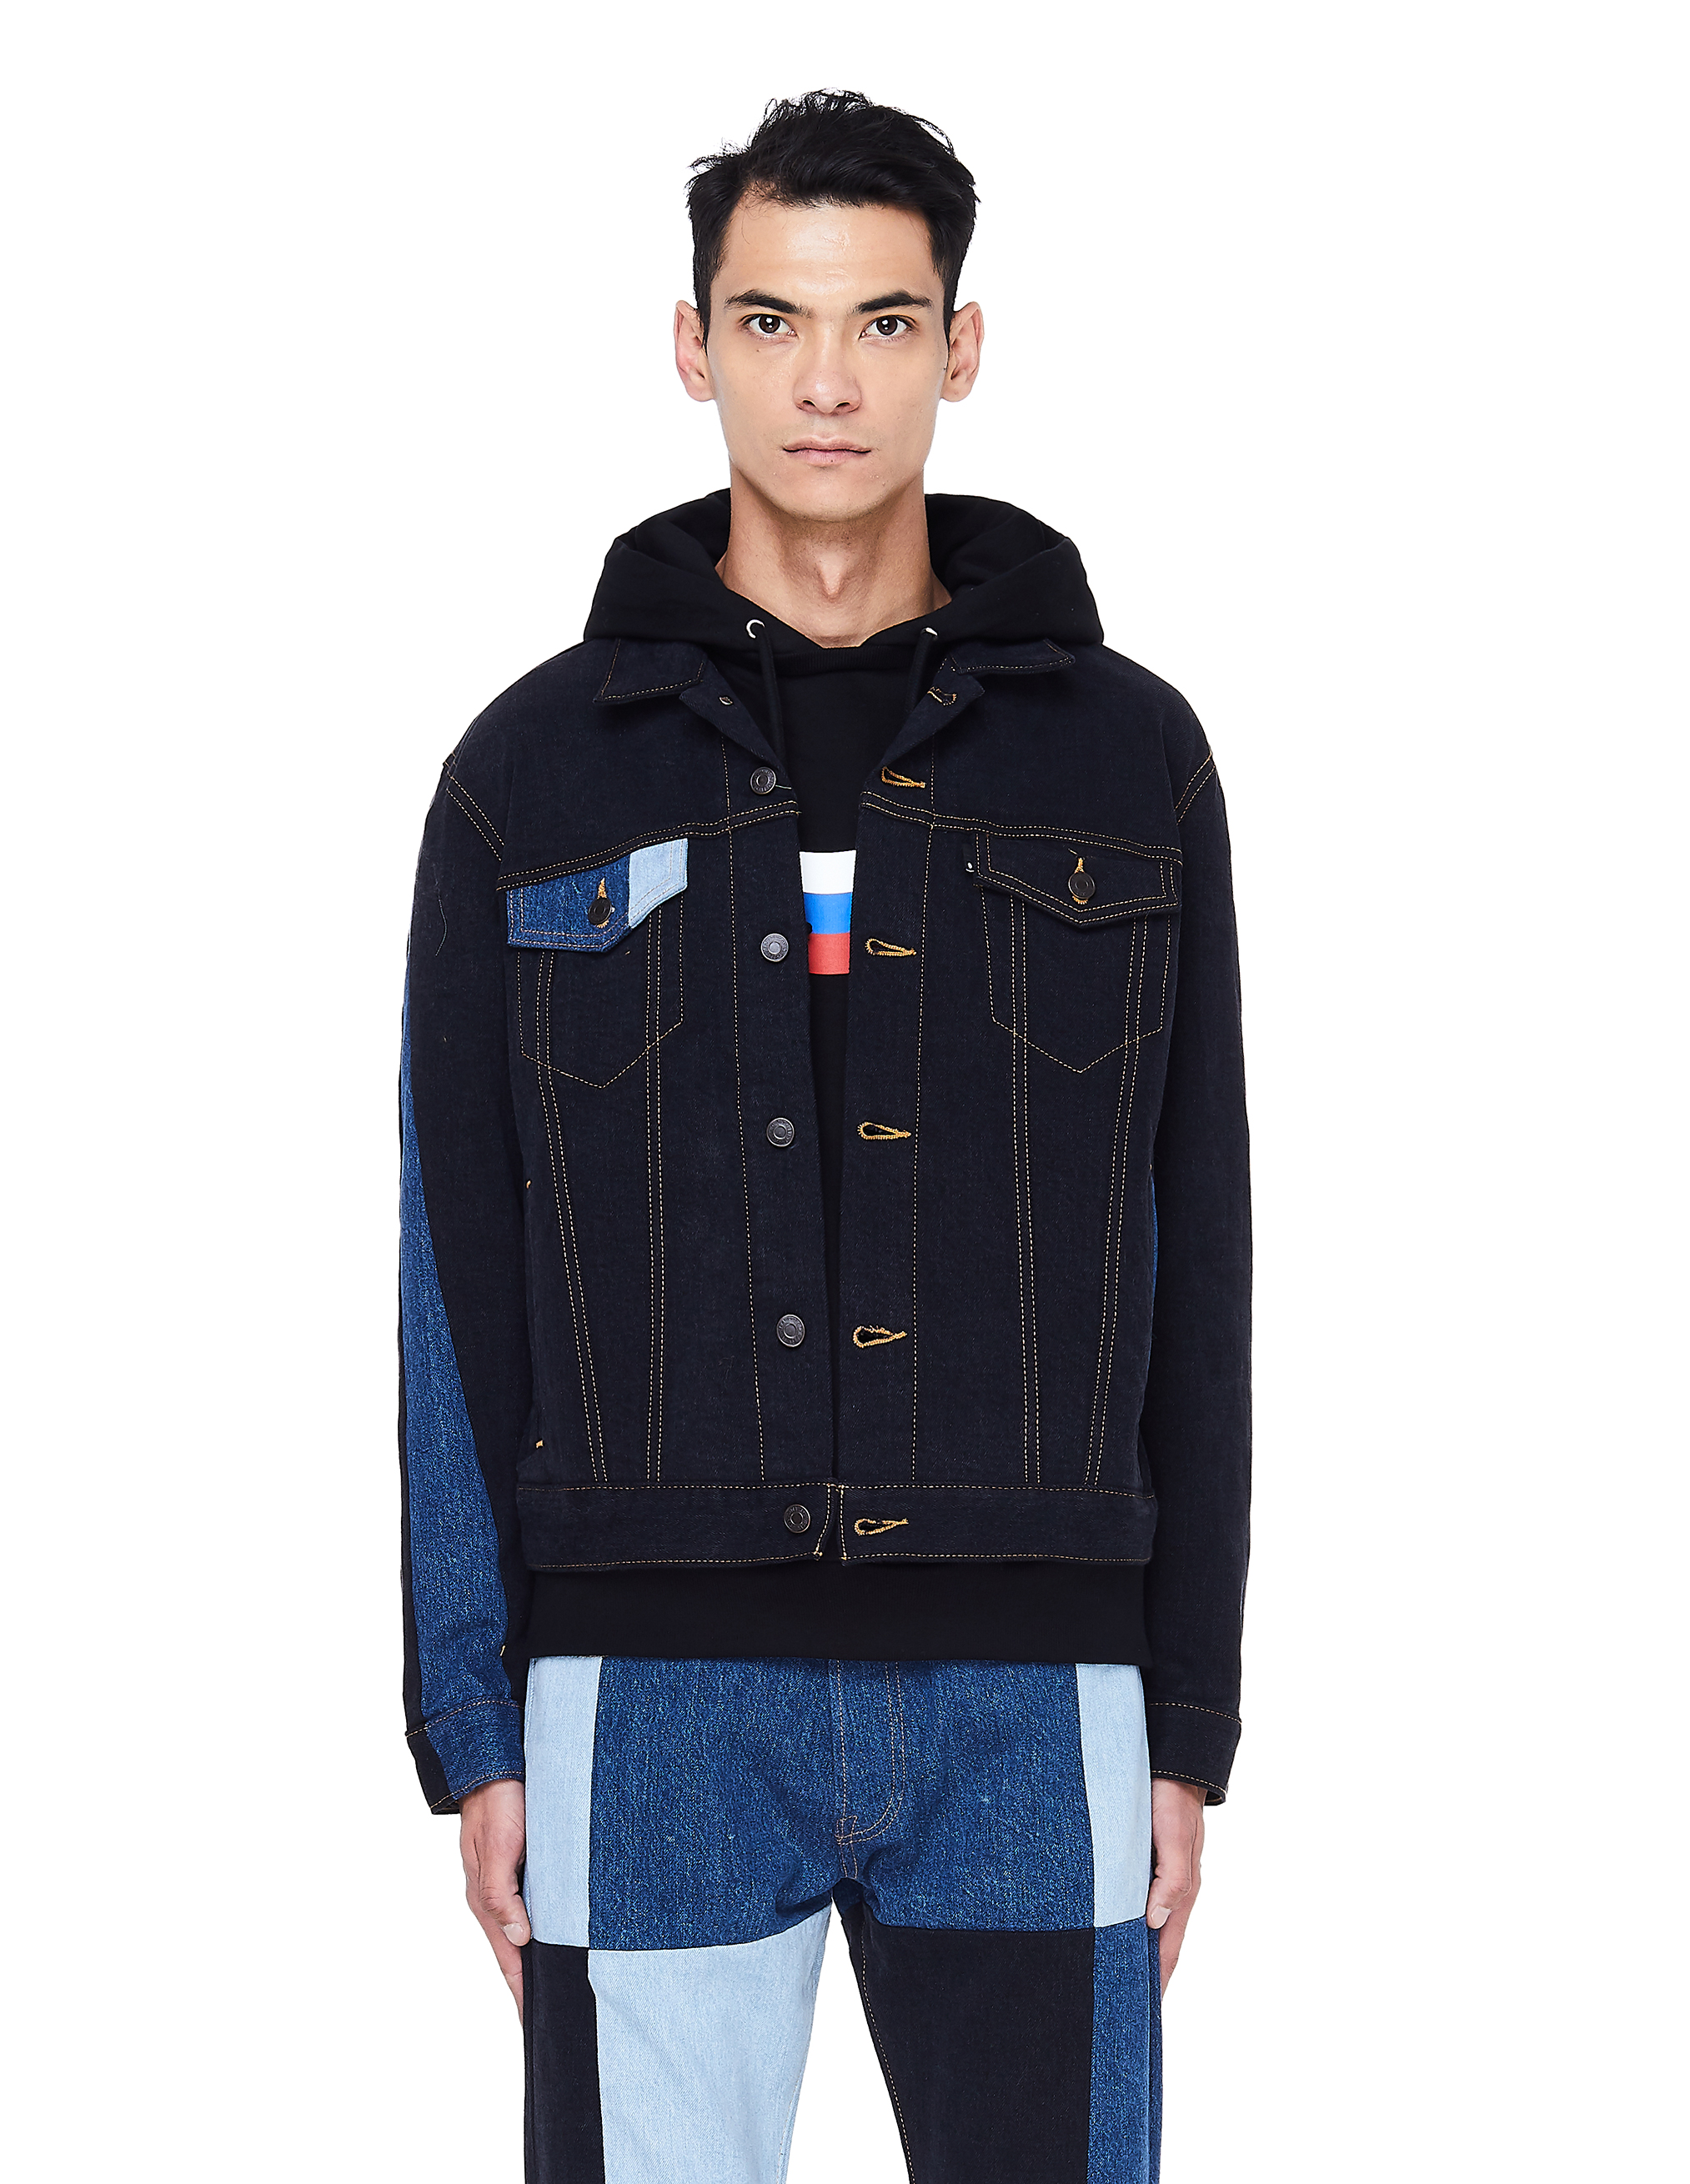 a914a4830 Gosha Rubchinskiy Patchwork Denim Jacket - Black